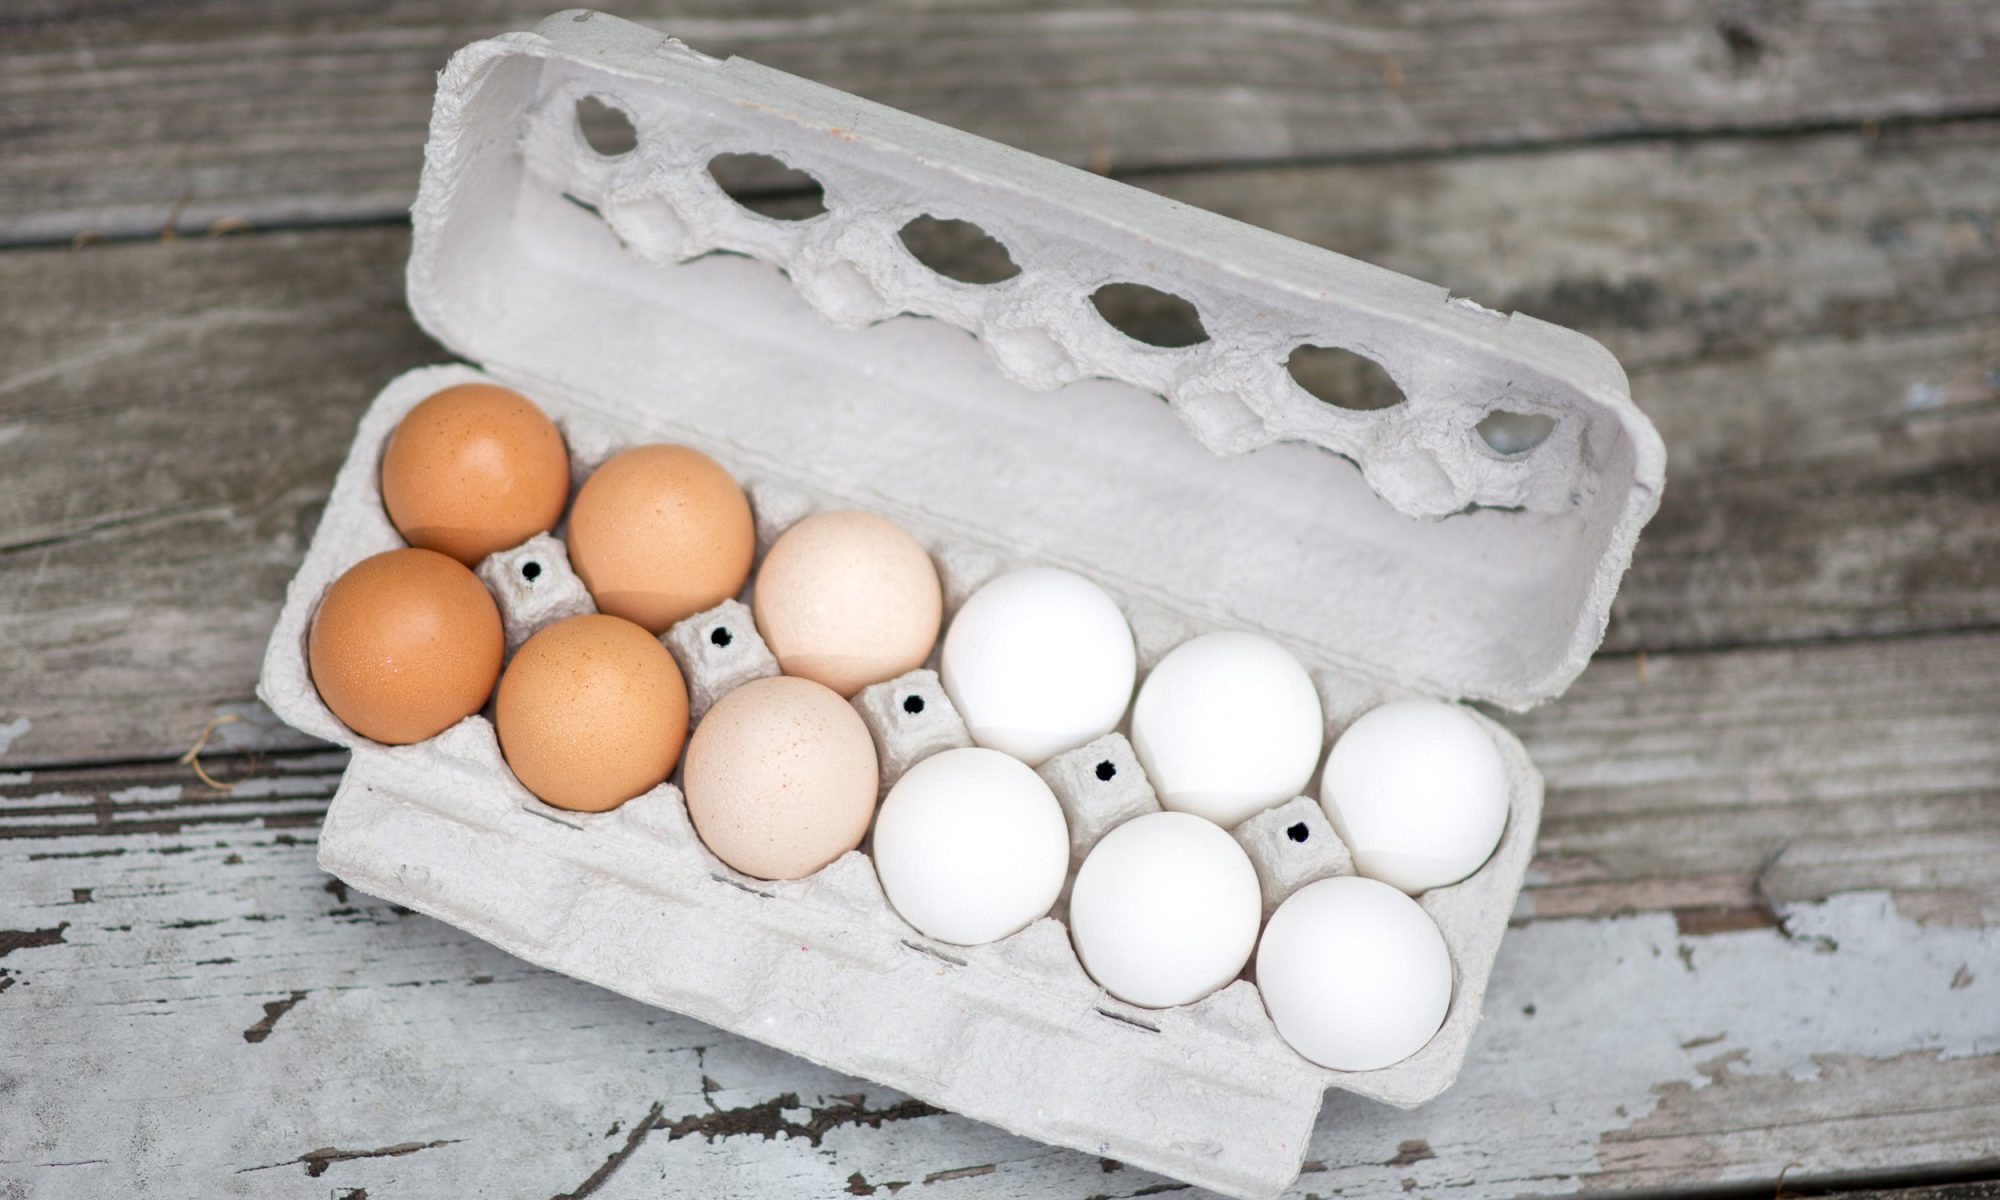 Why Are Eggs Sold By the Dozen?